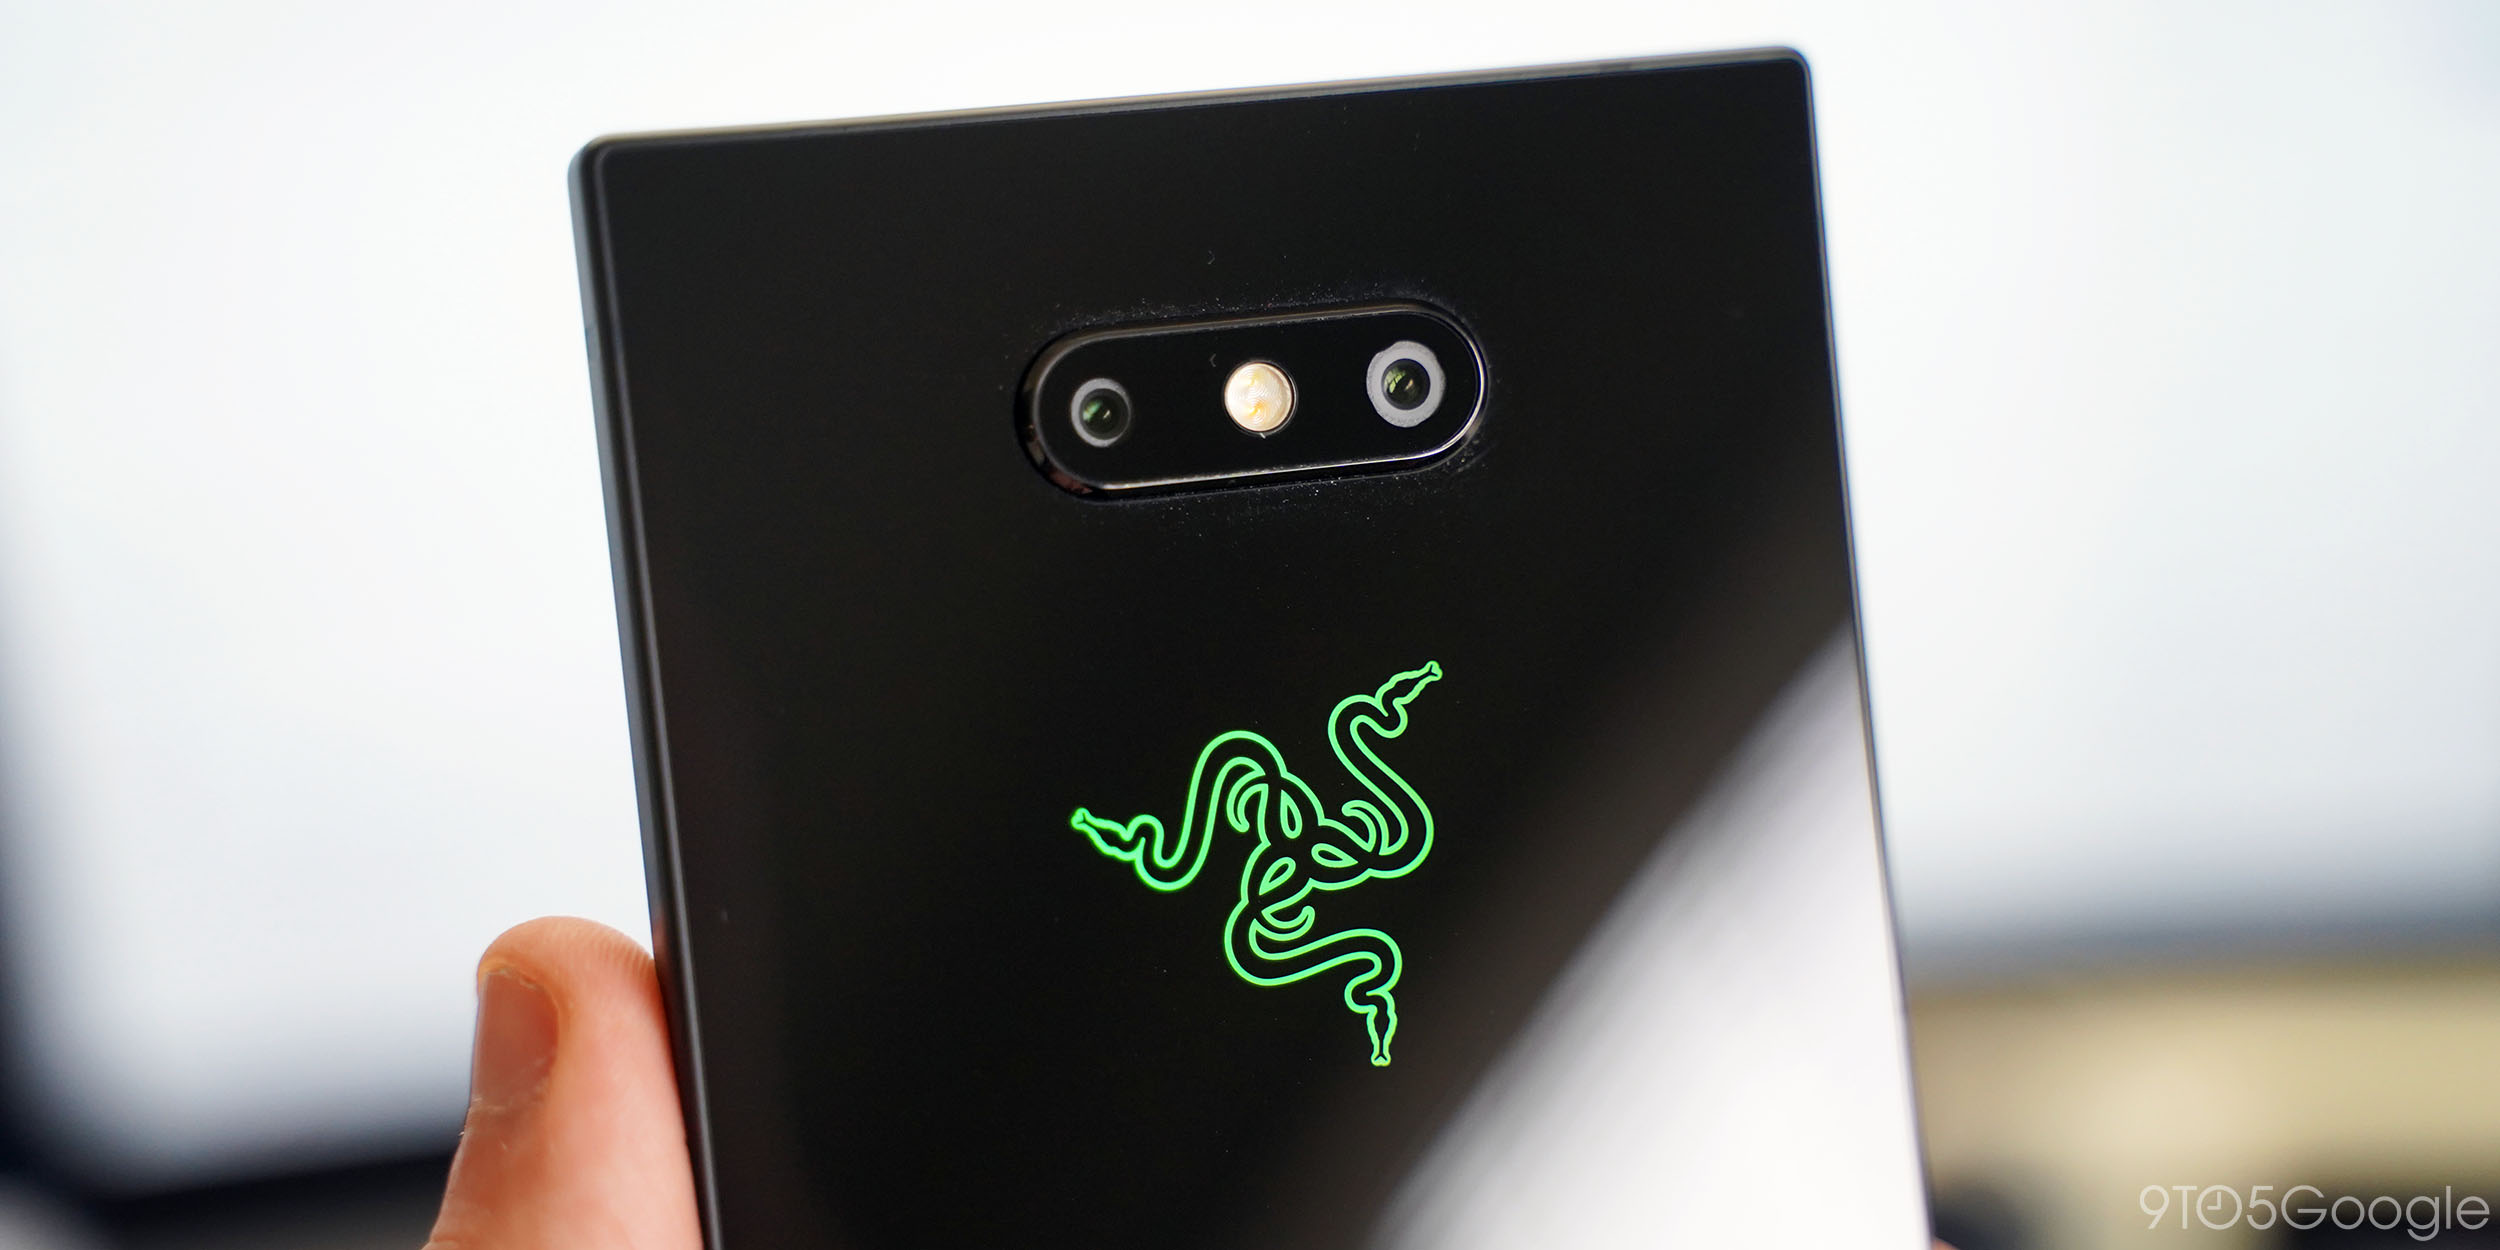 Razer partners w/ Tencent, developers of PUBG Mobile, Razer Phone 3 might not be dead